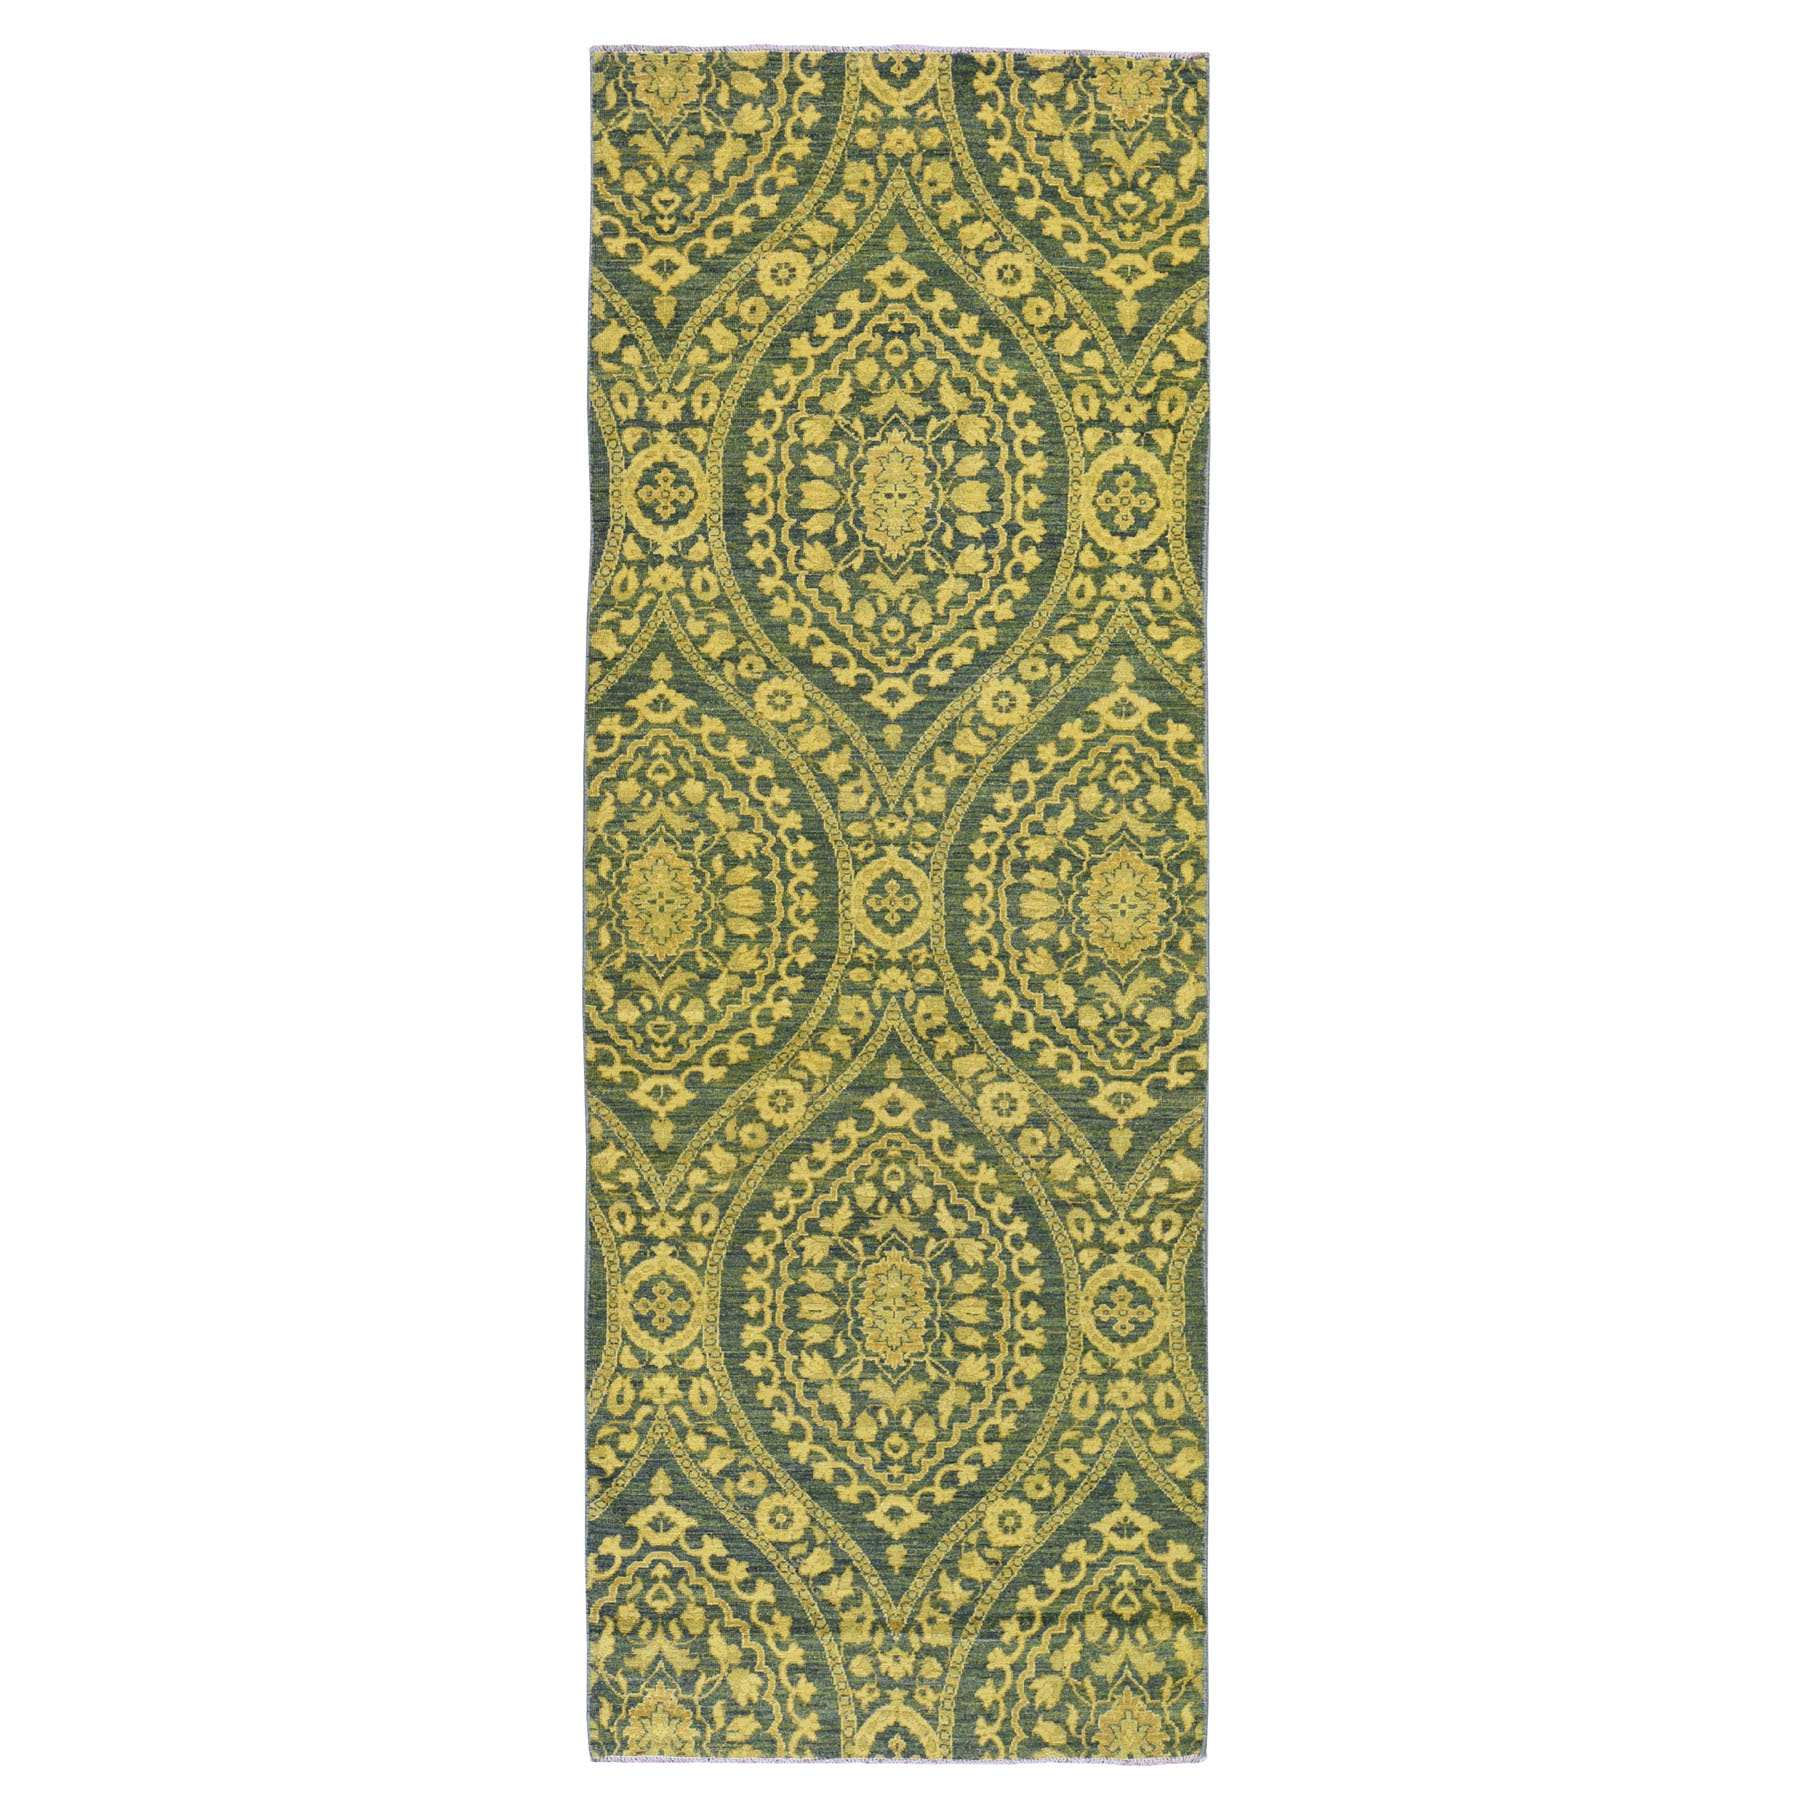 Oushak-And-Peshawar-Hand-Knotted-Rug-236860